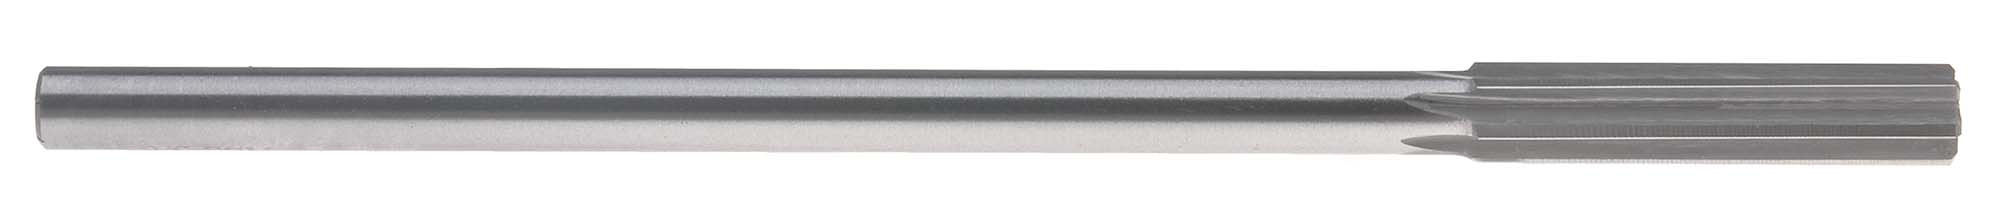 21/32 Straight Shank Chucking Reamer, Straight Flute, High Speed Steel